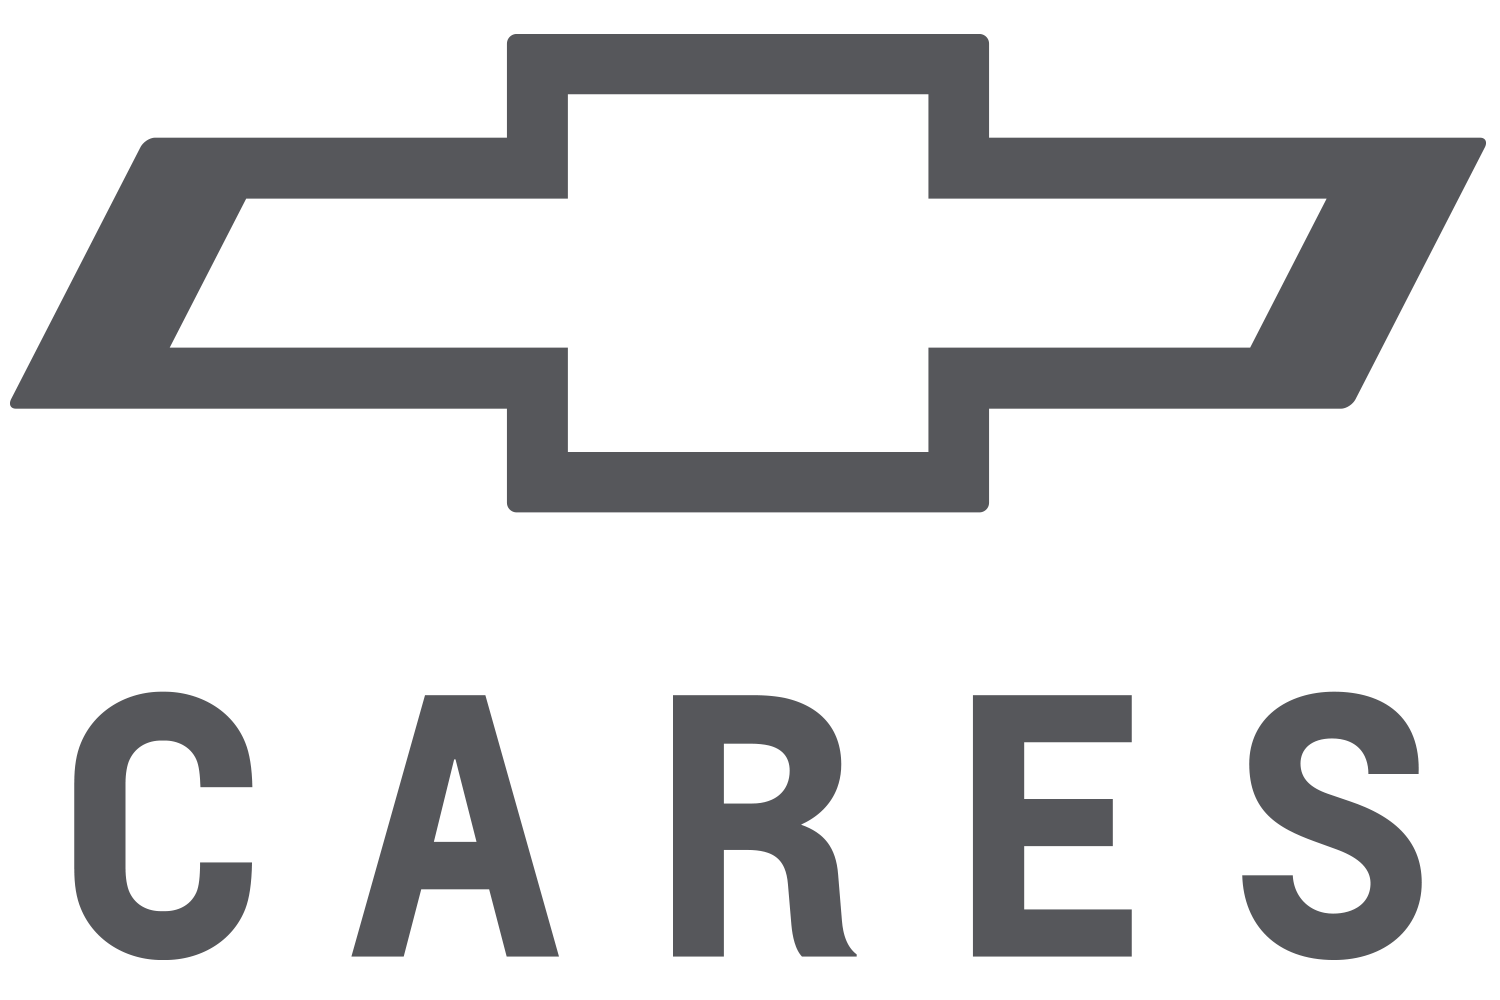 Chevrolet Cares Logo